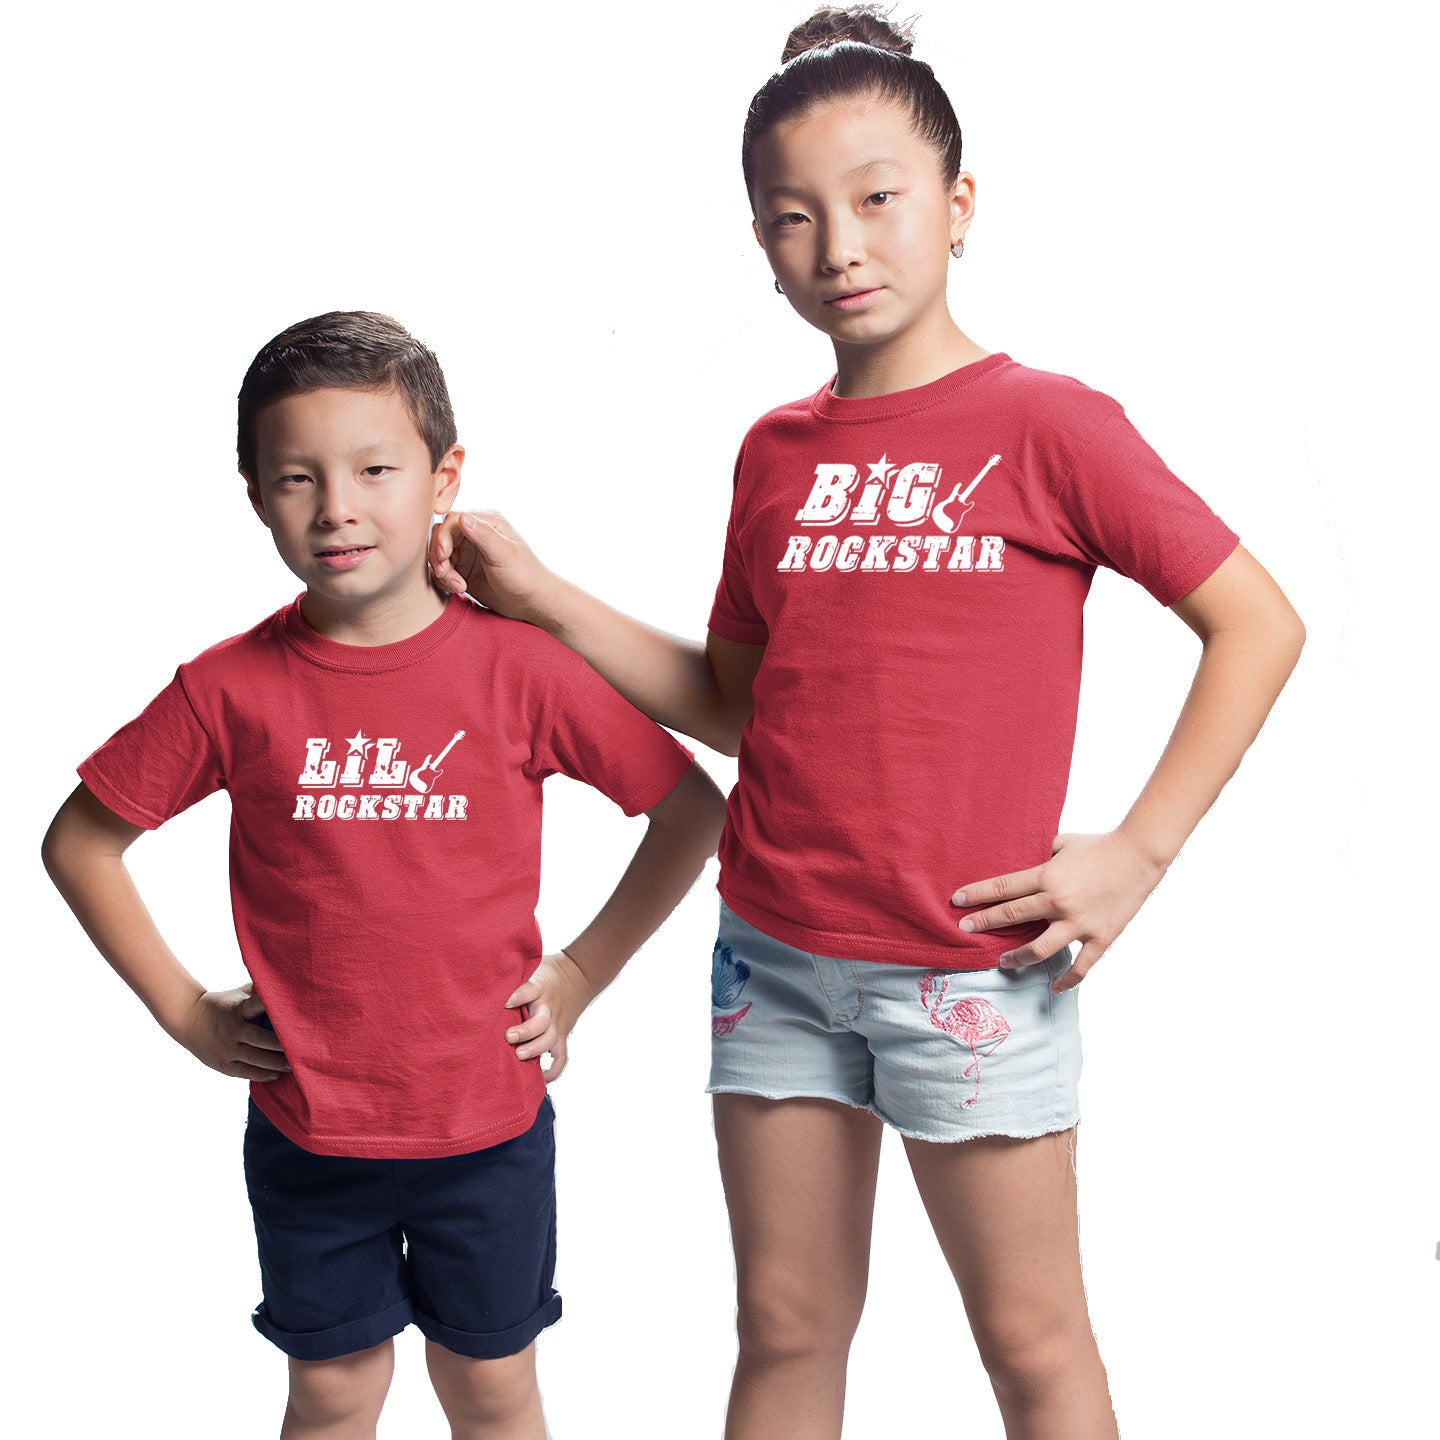 Sprinklecart Big Rockstar Lil Rockstar Printed Matching Sibling T Shirt Combo of 2 Red Cotton T Shirts